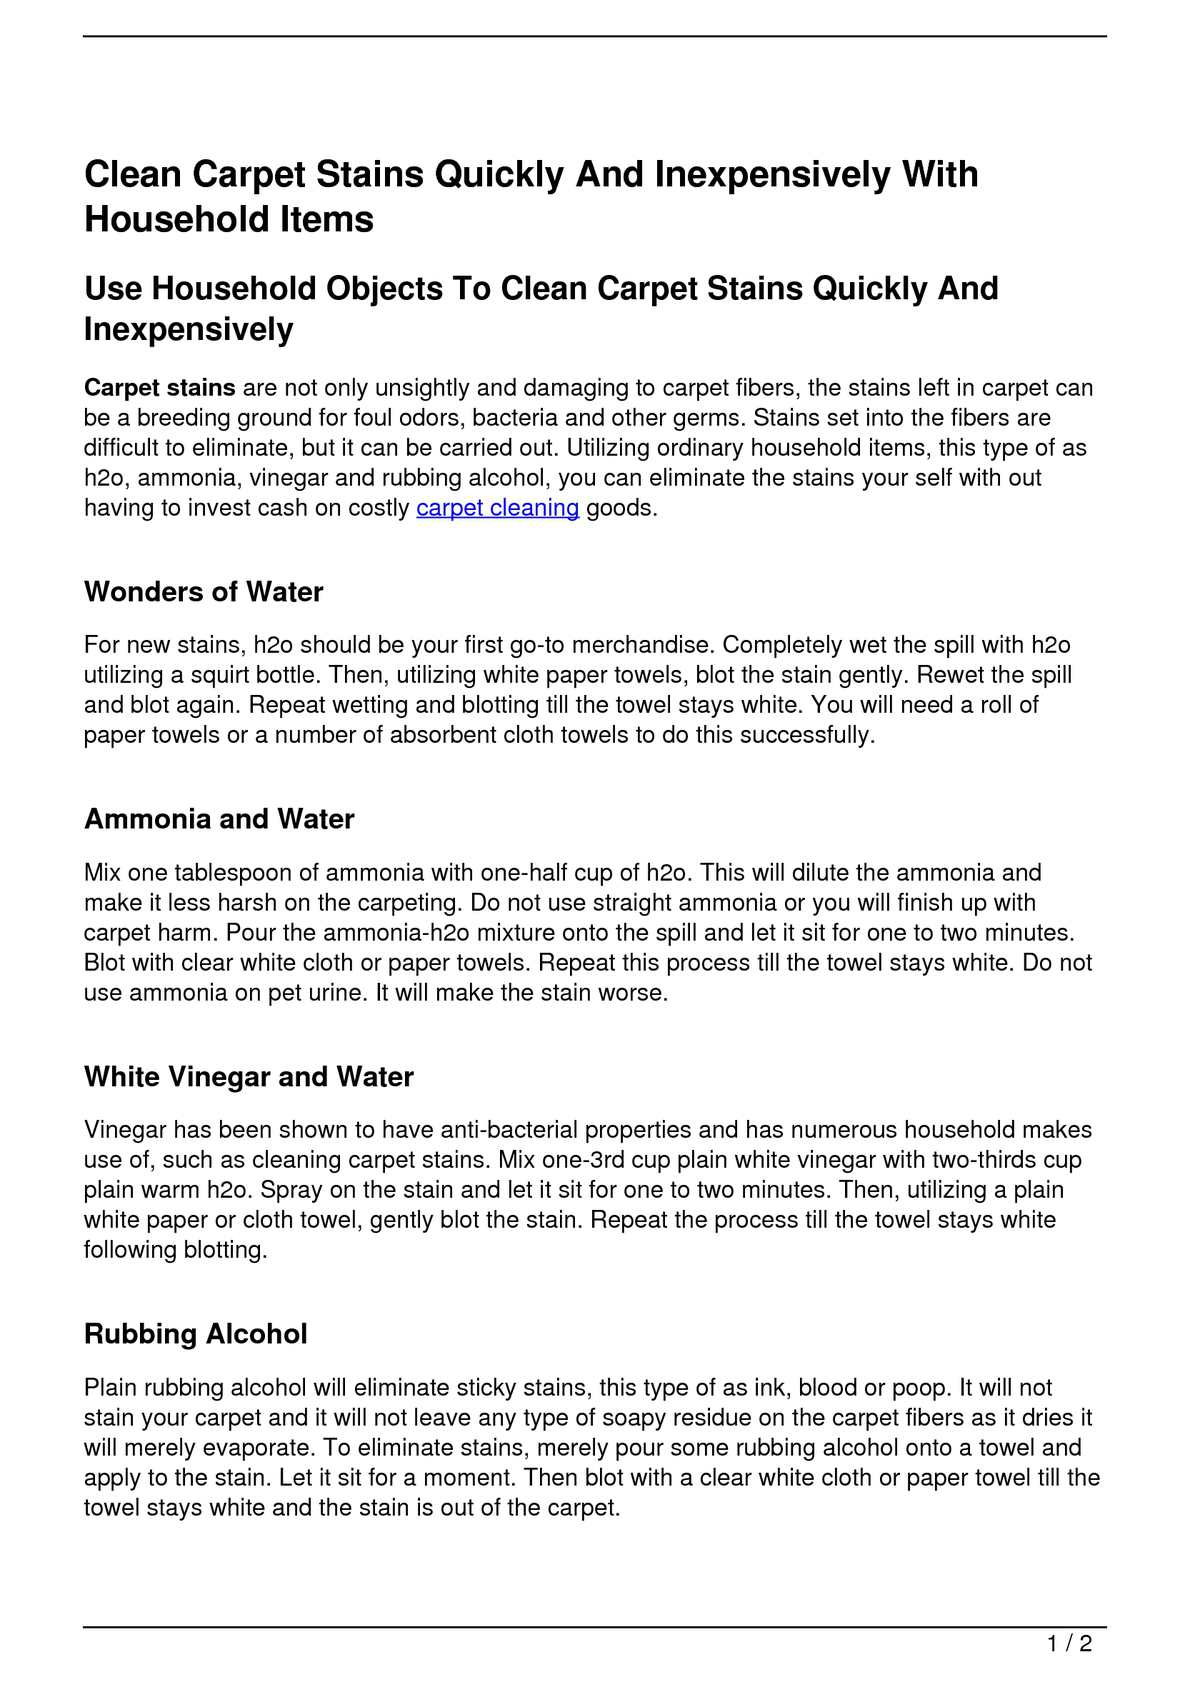 Calaméo - Clean Carpet Stains Quickly And Inexpensively With